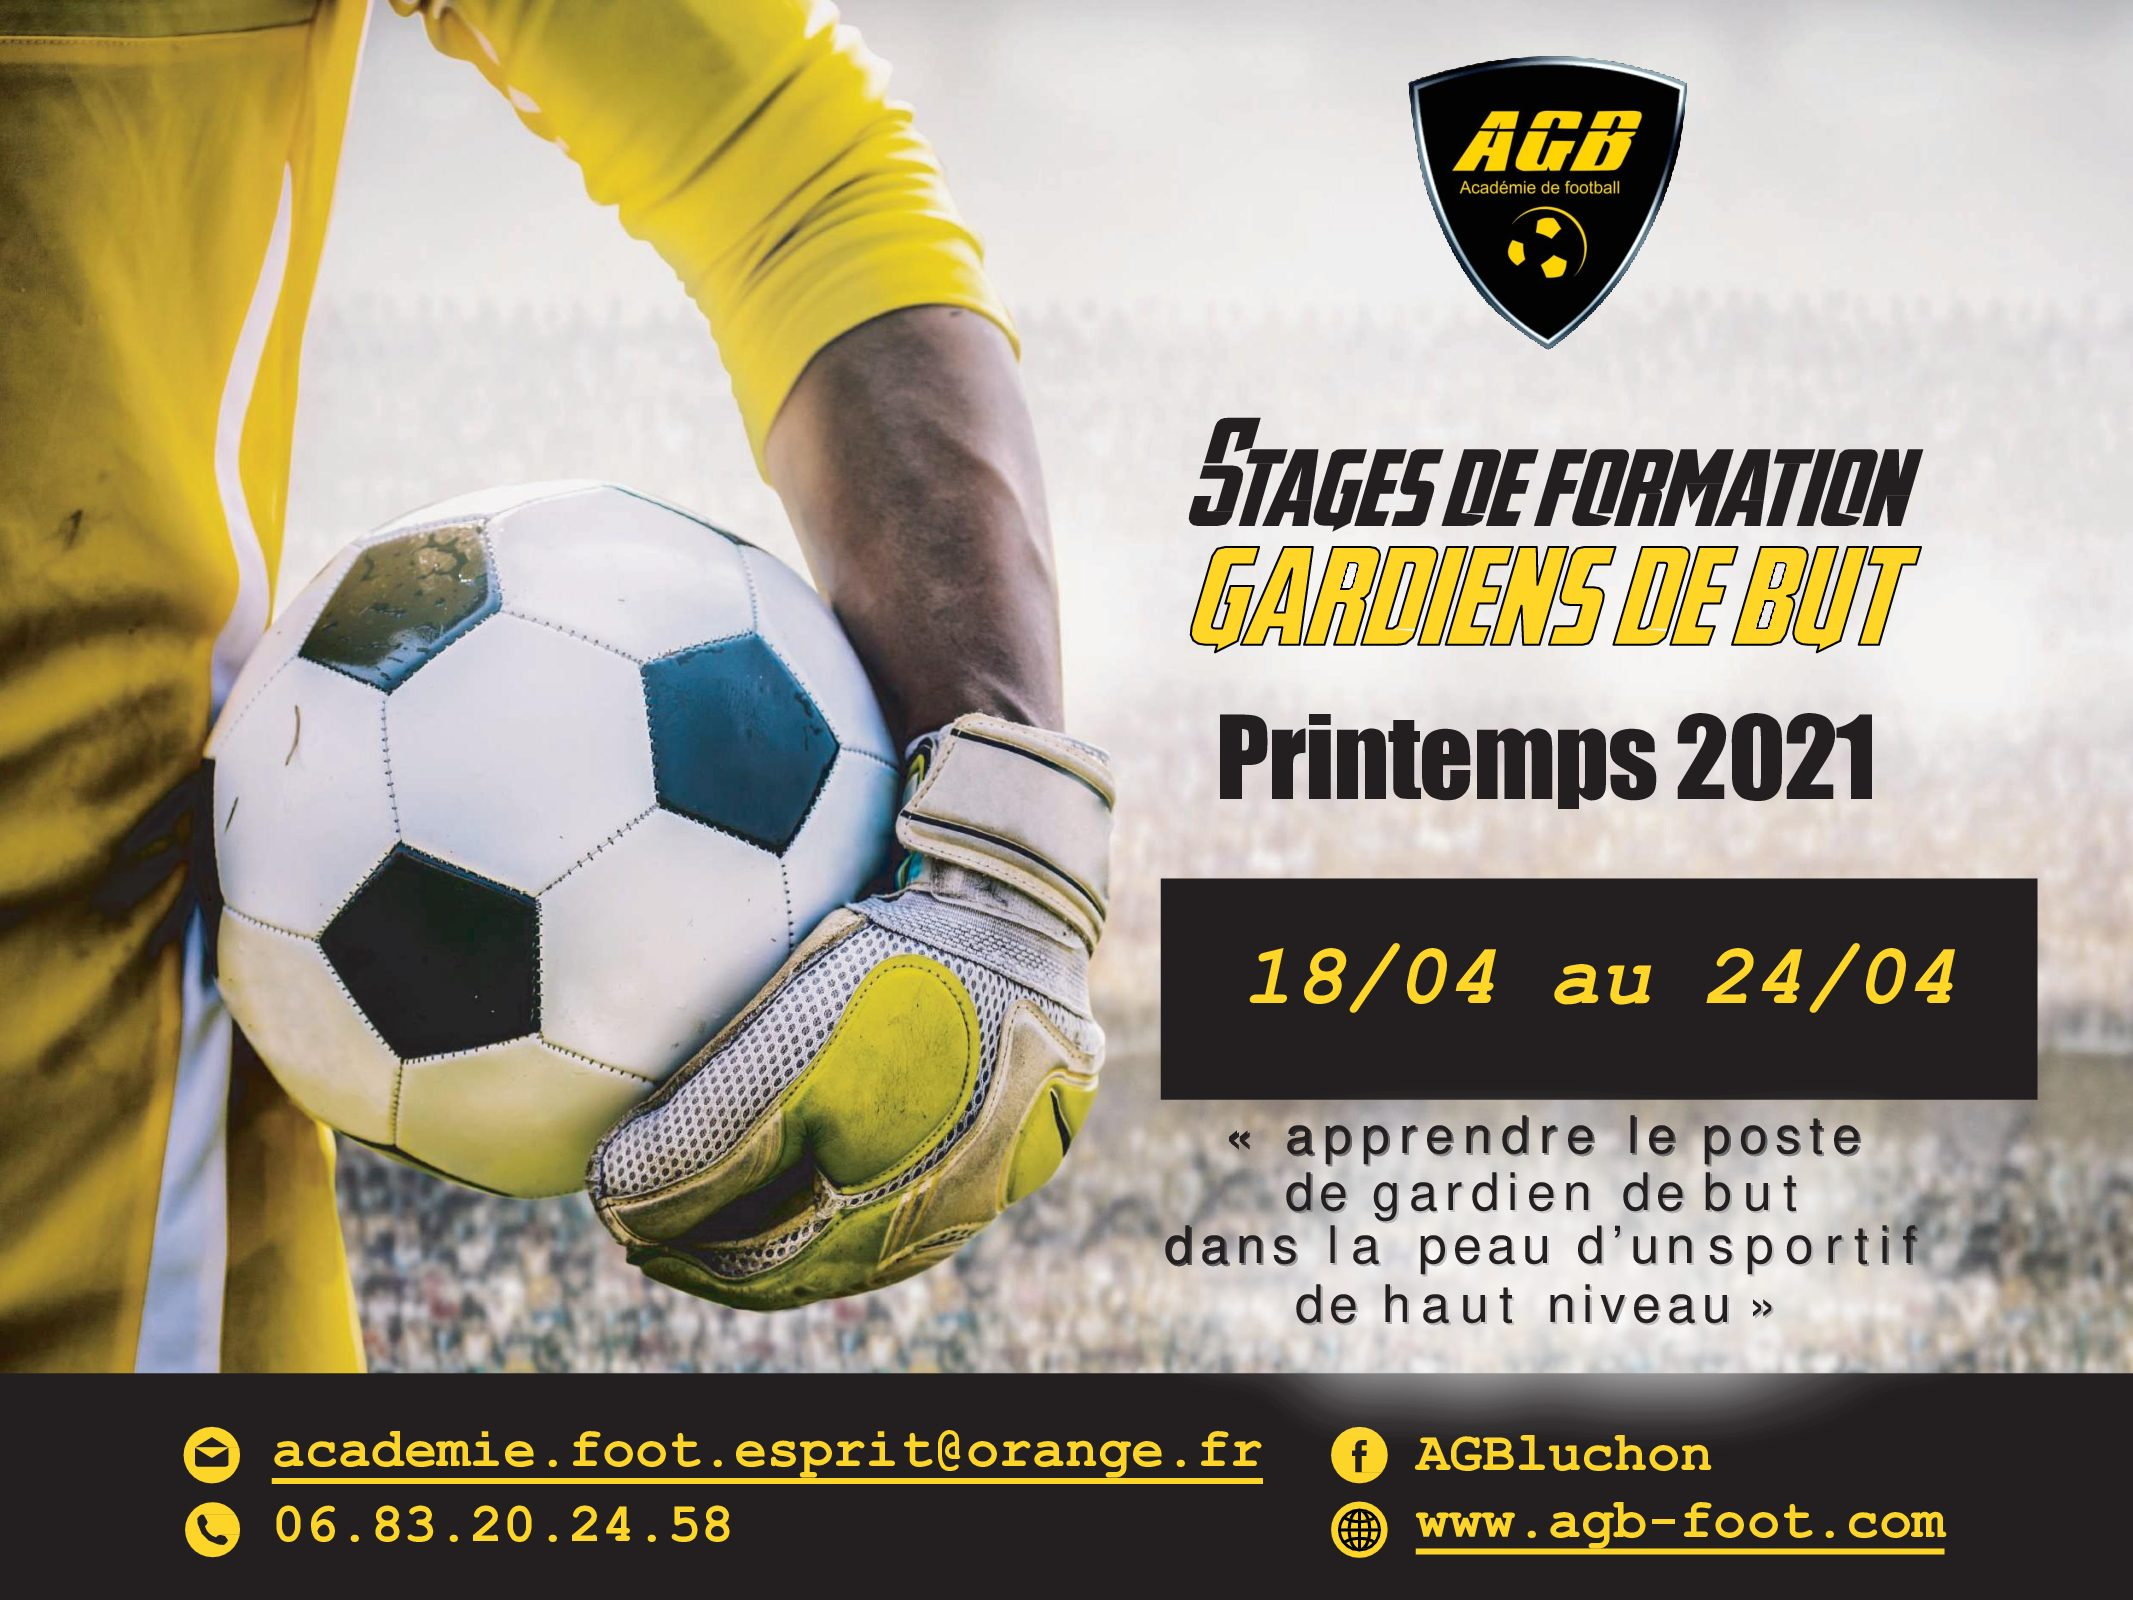 Stage AGB printemps 2021 : inscriptions ouvertes